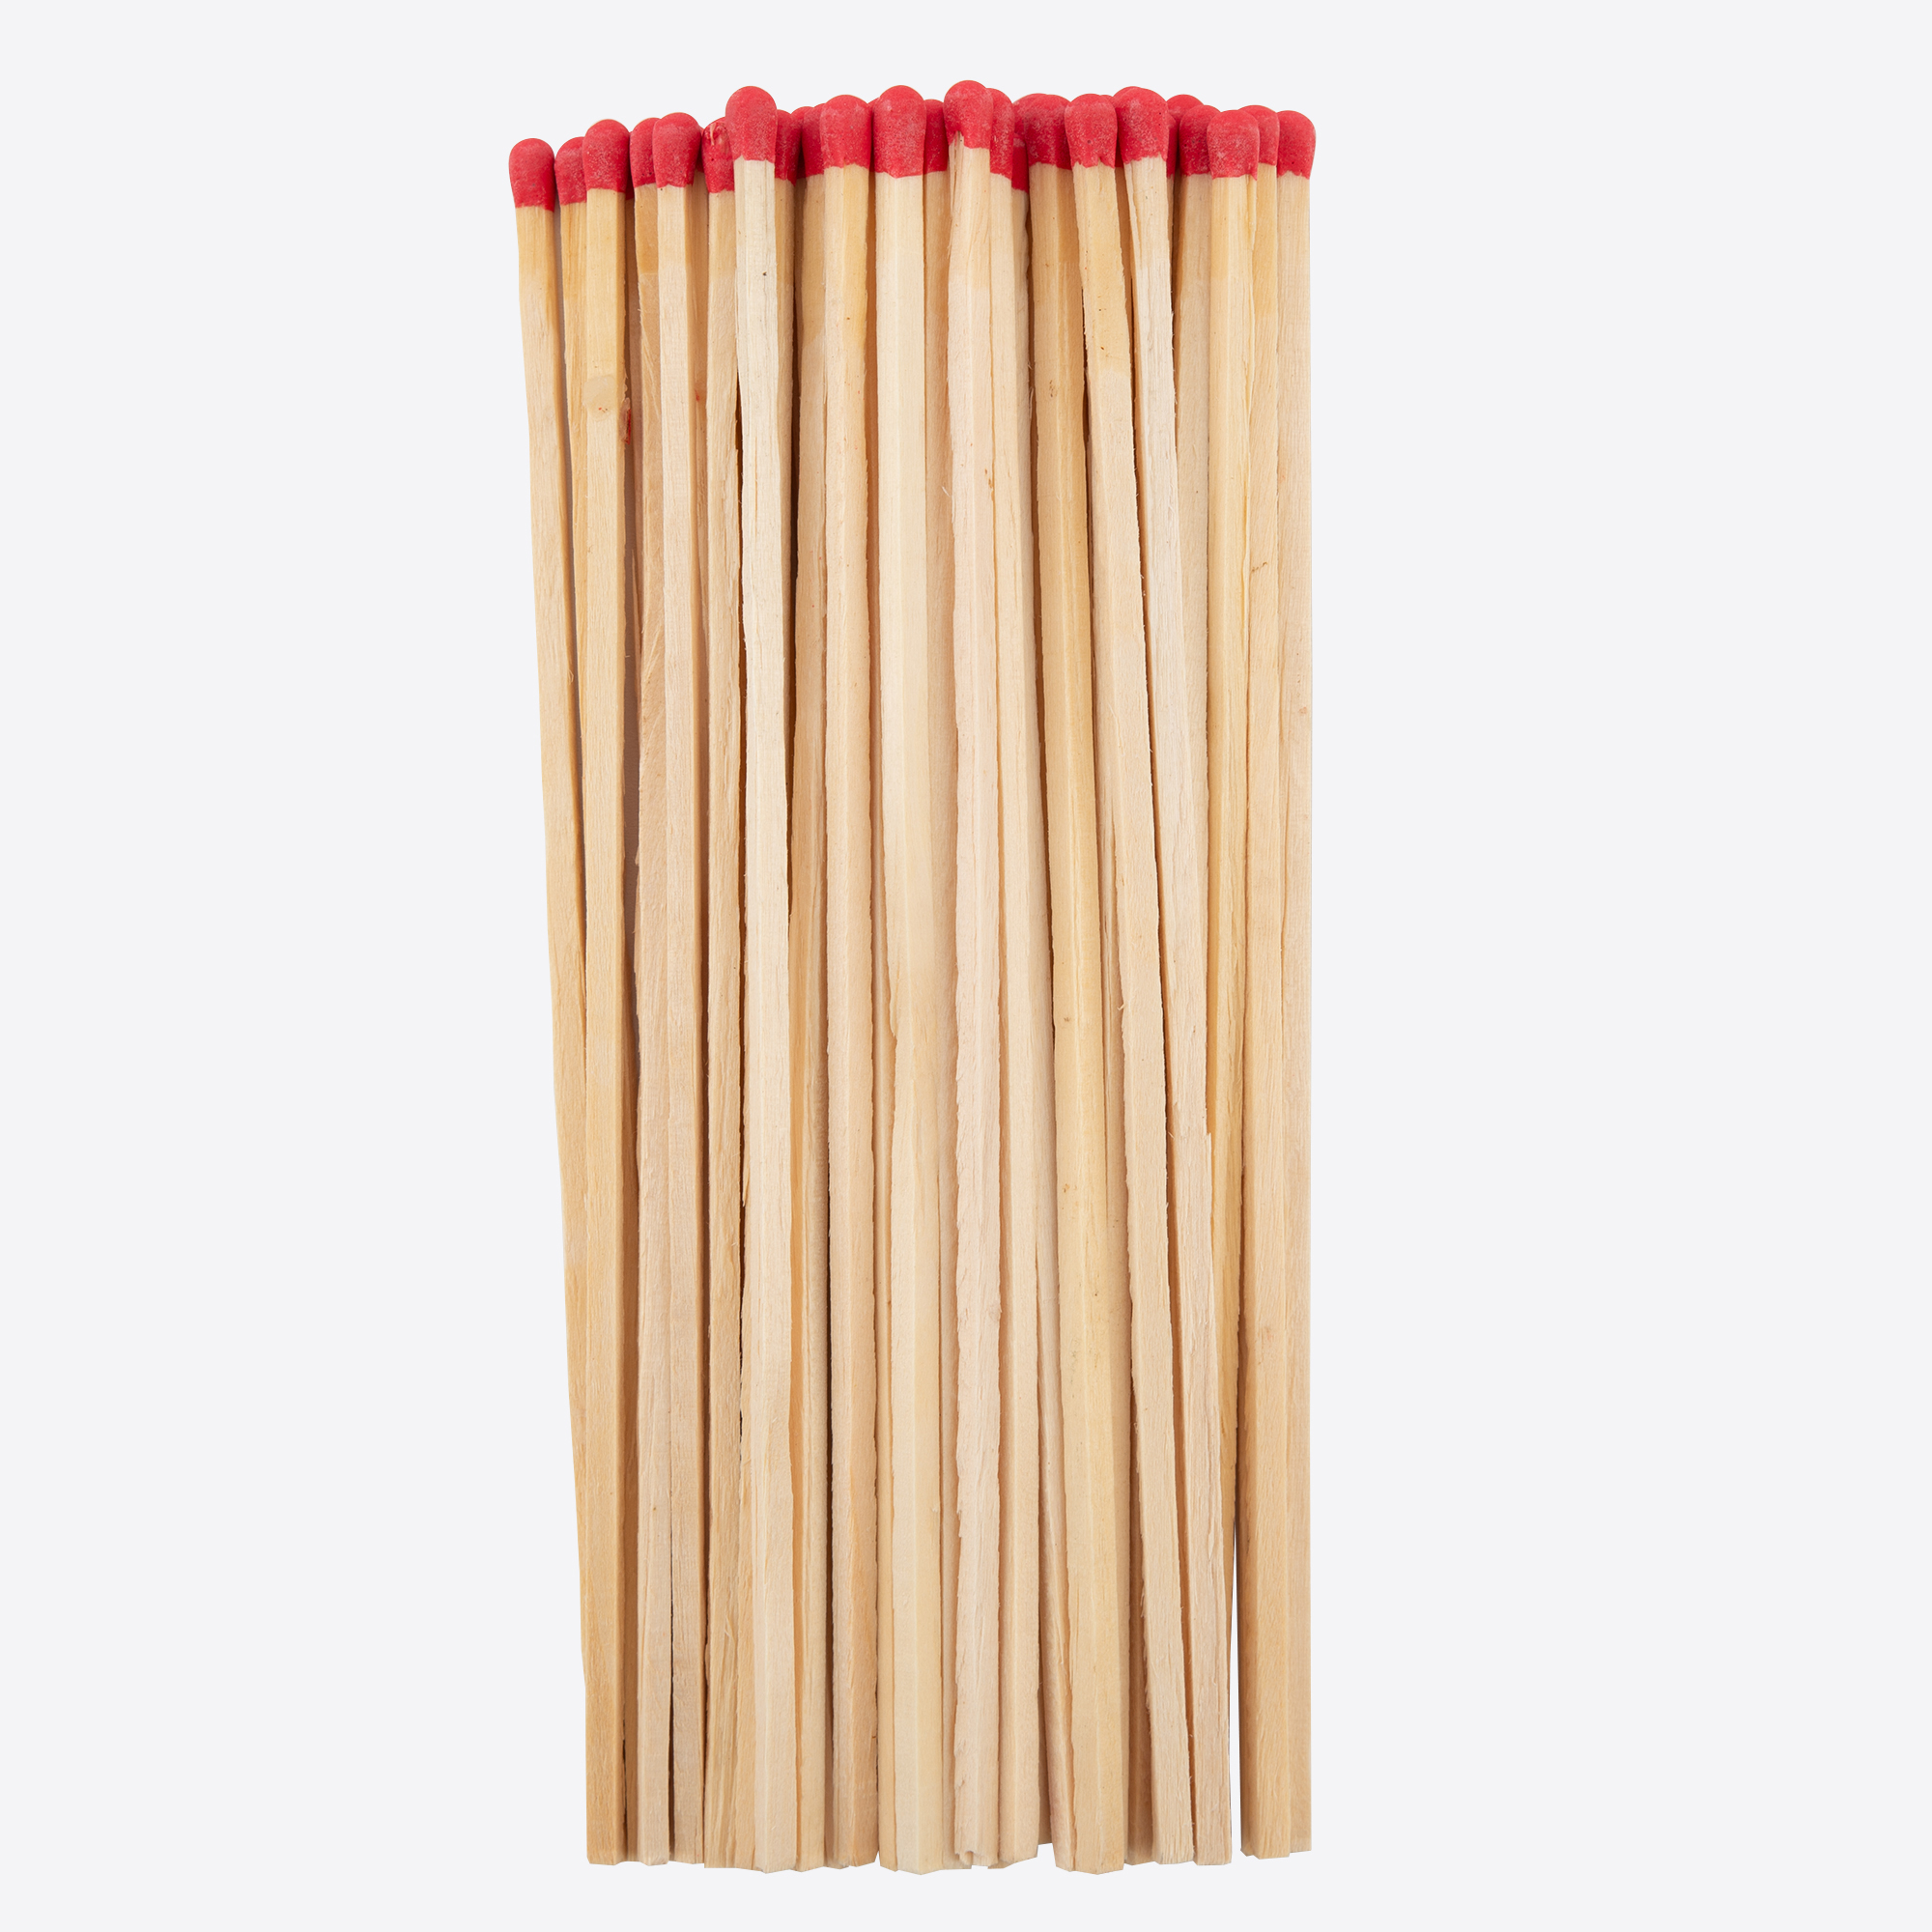 Barbecook set of 40 long matches 19.5cm